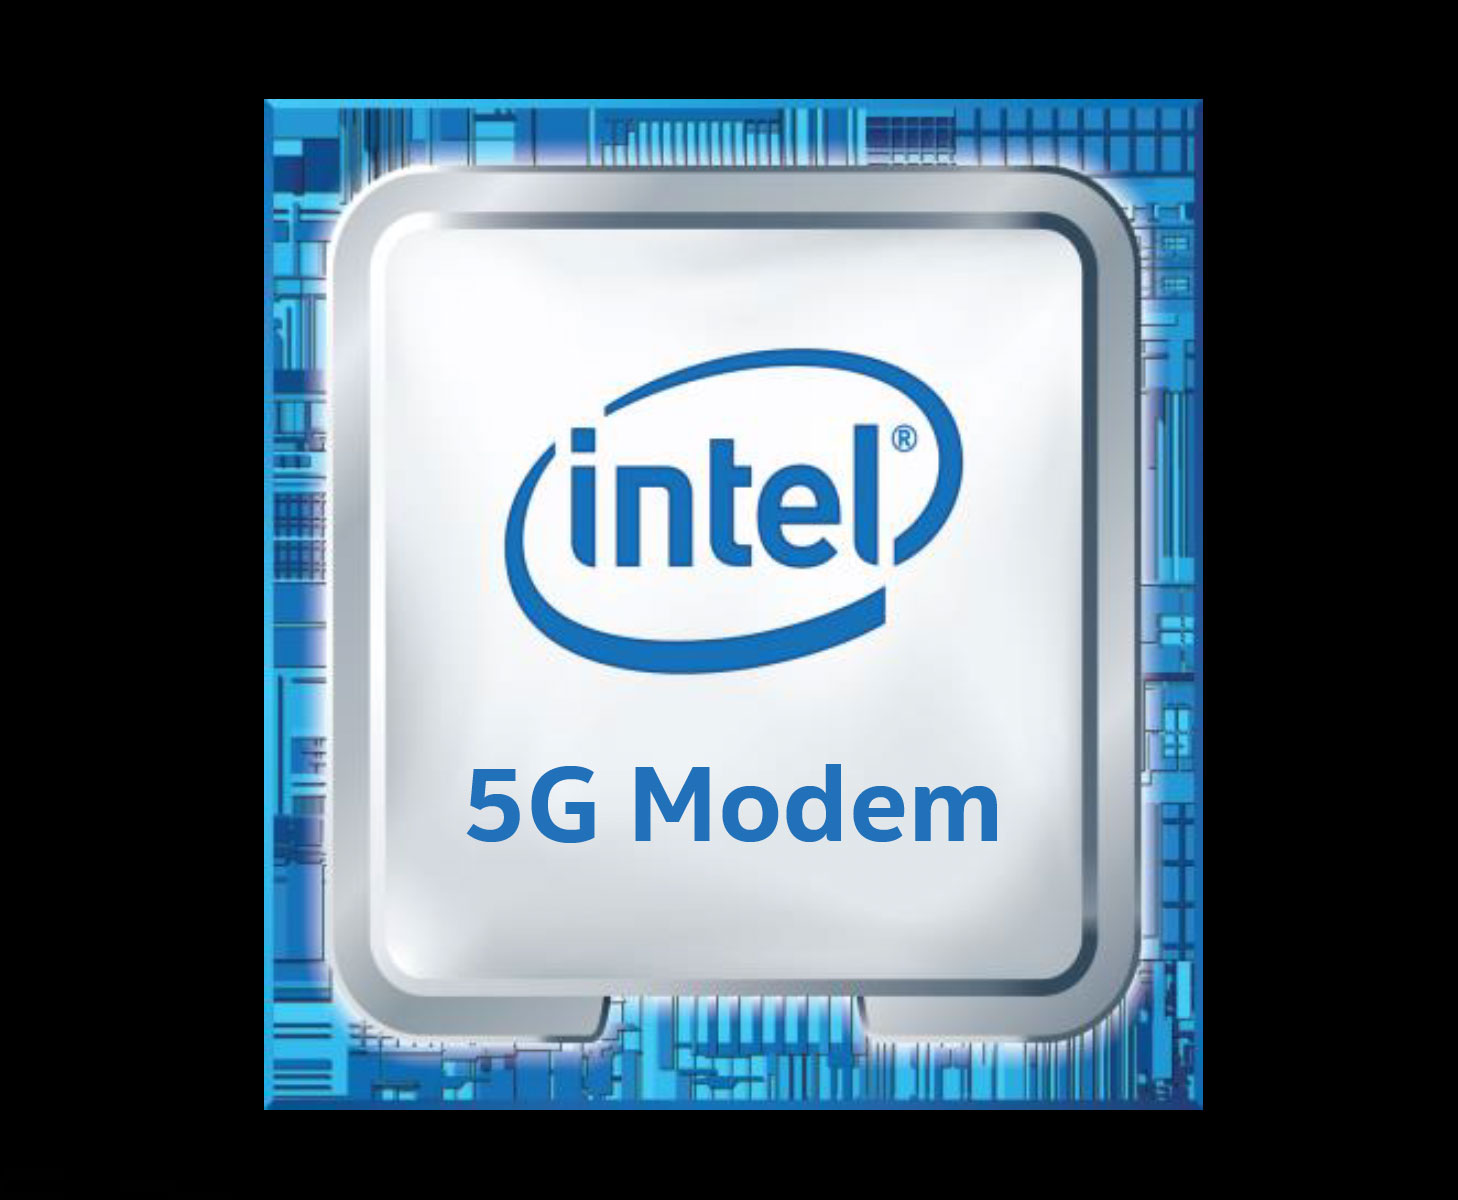 Intel plans to send prototypes of its 5G communication chips to auto-industry partners in the second half of 2017.